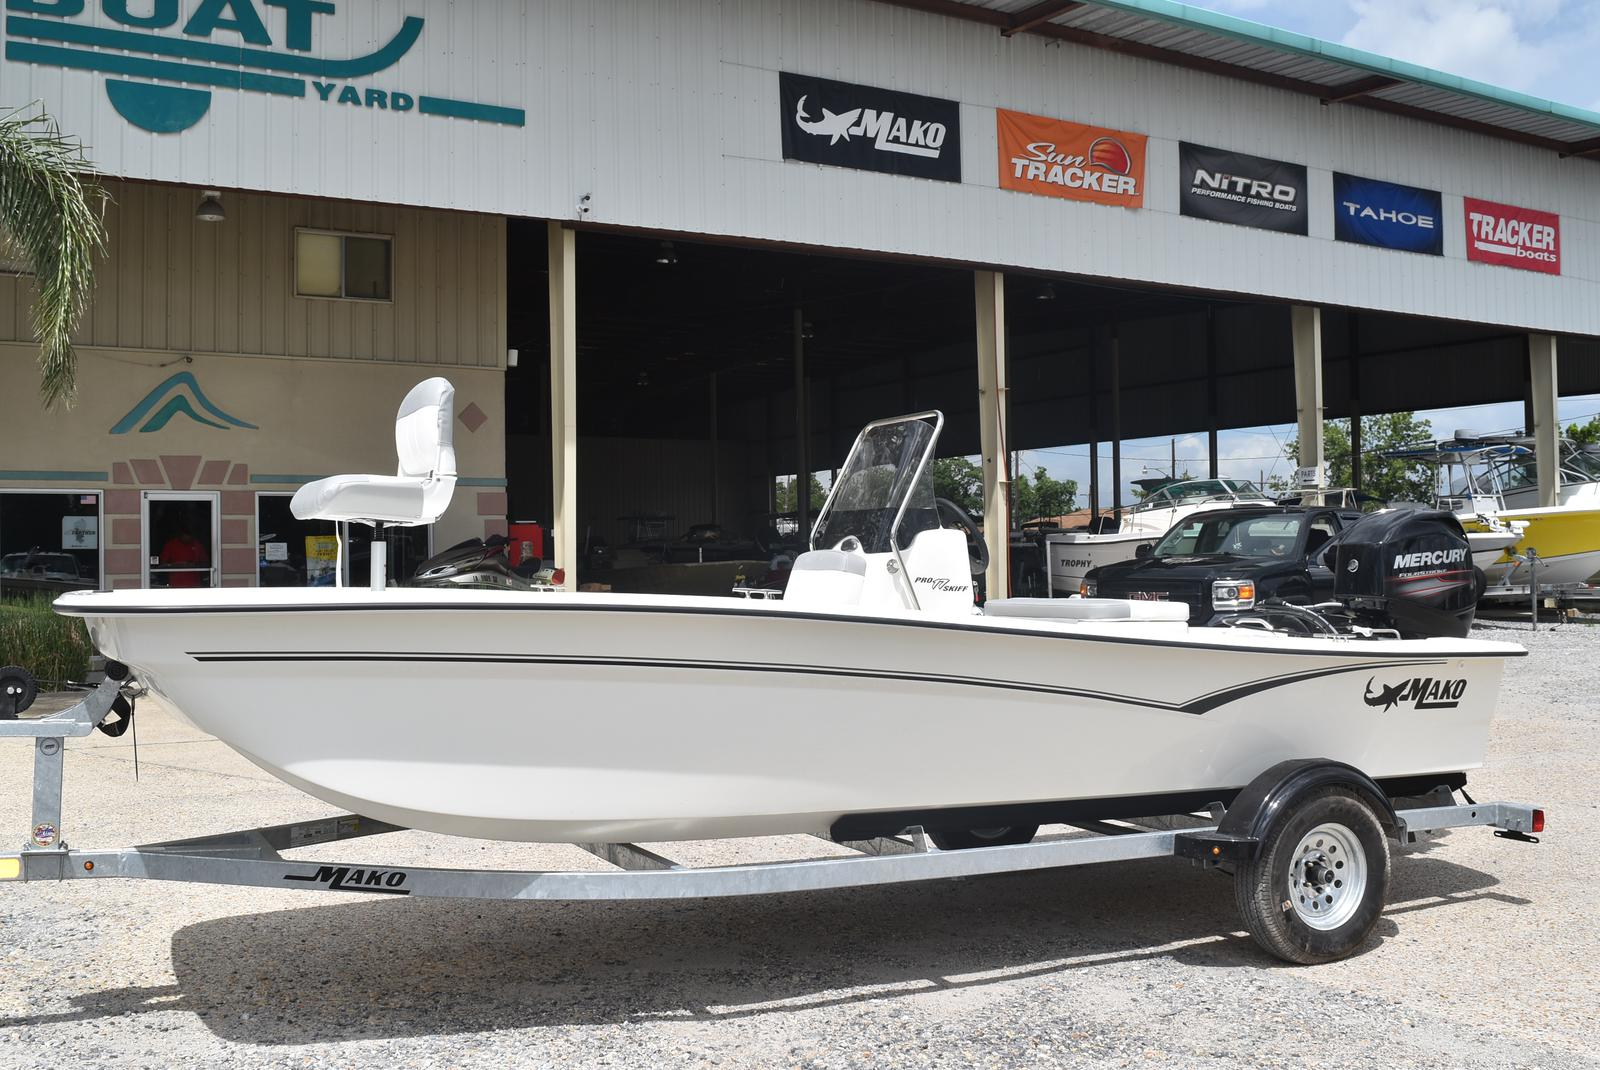 2020 Mako boat for sale, model of the boat is Pro Skiff 17, 75 ELPT & Image # 132 of 702